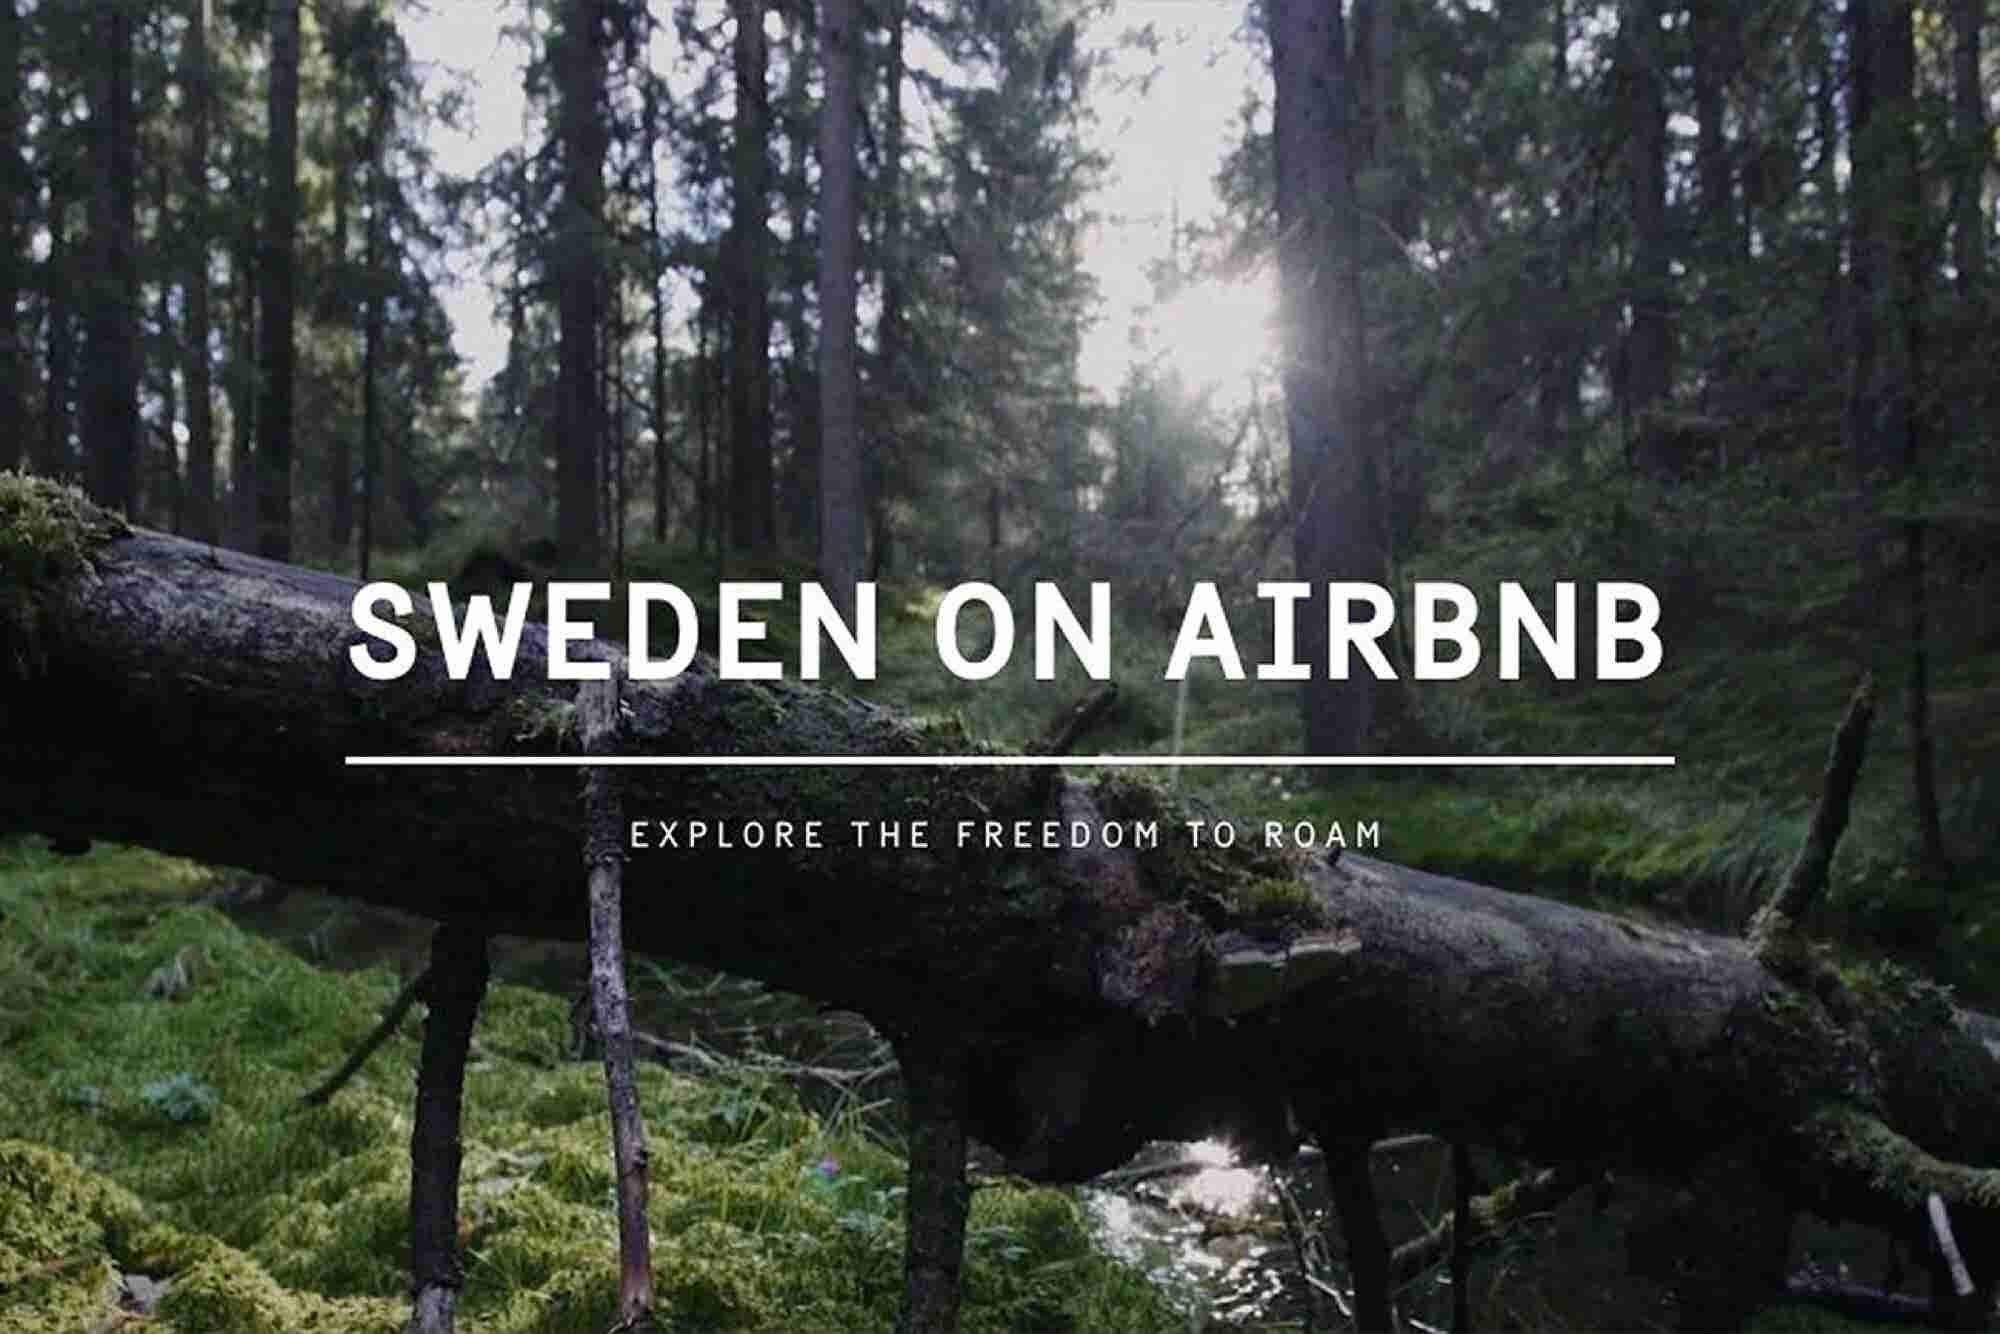 Sweden Lists Itself on Airbnb for Free